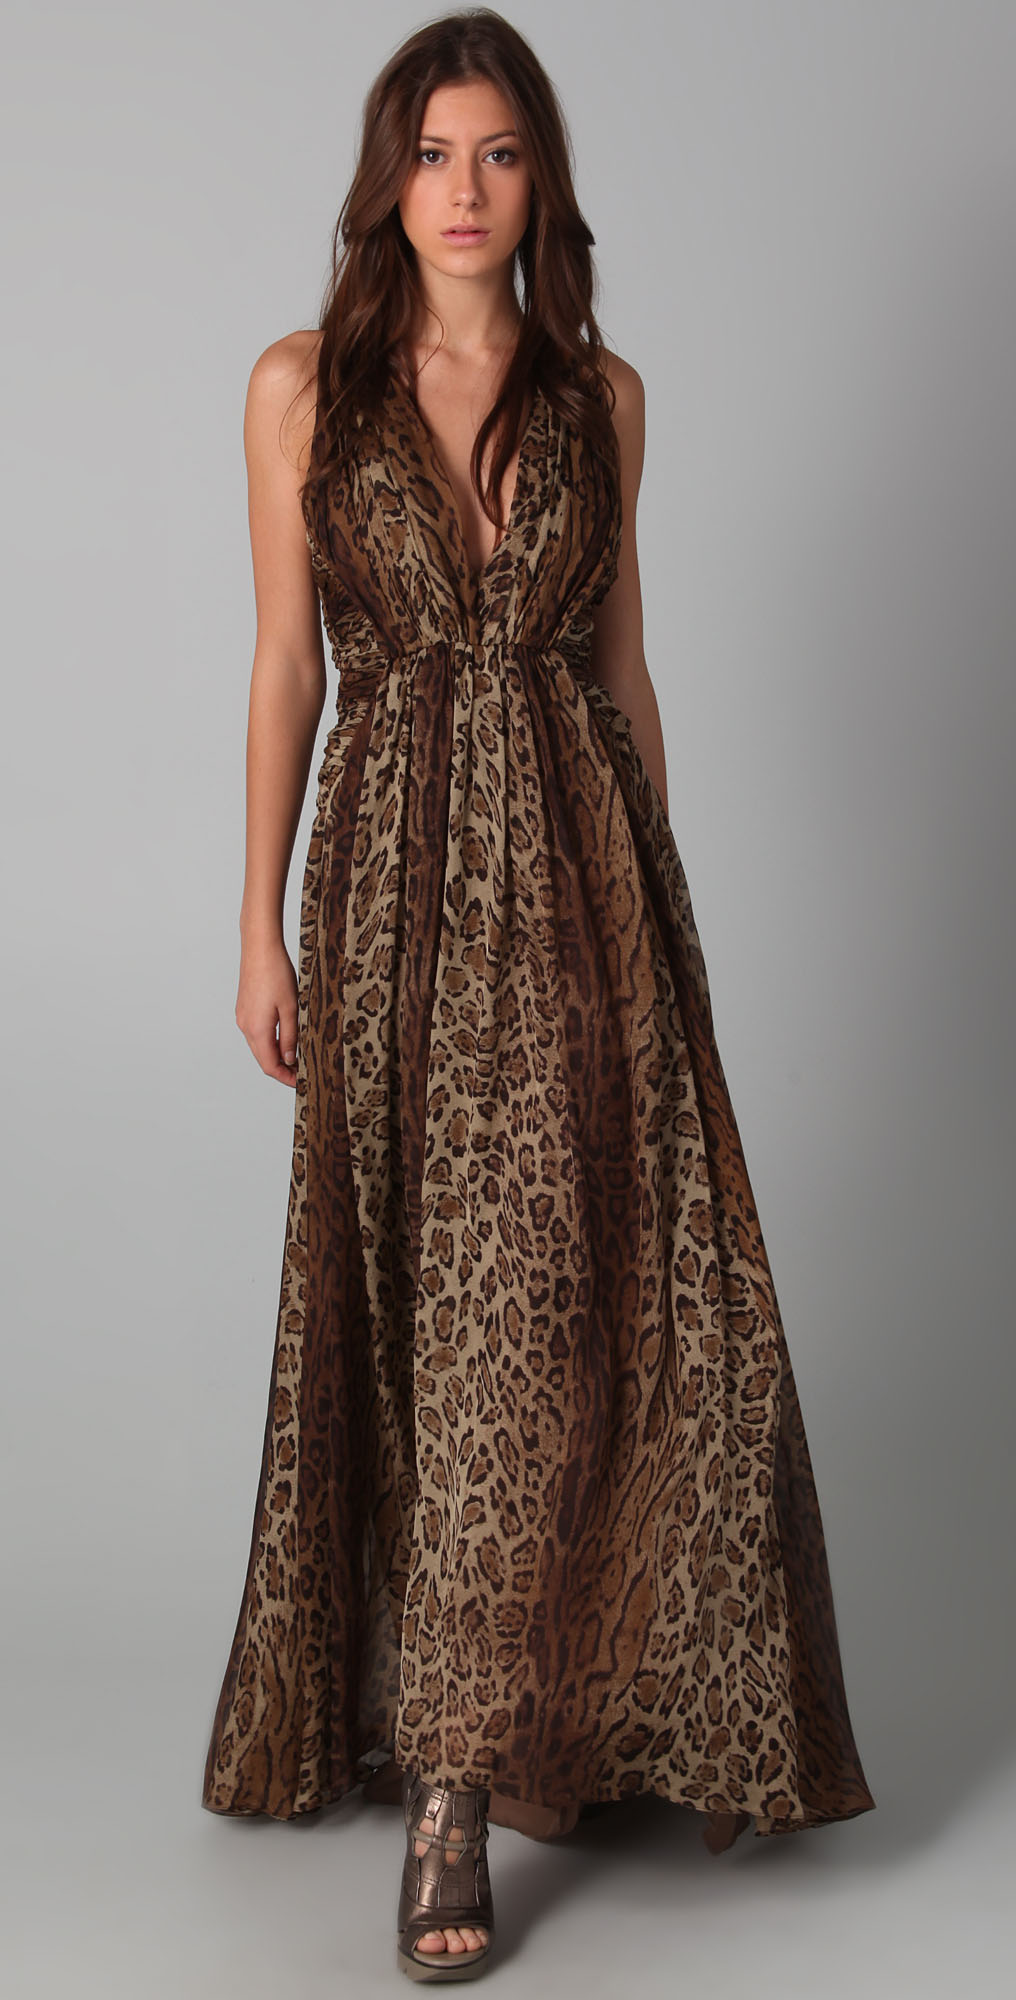 Find great deals on eBay for animal print maxi dresses. Shop with confidence.